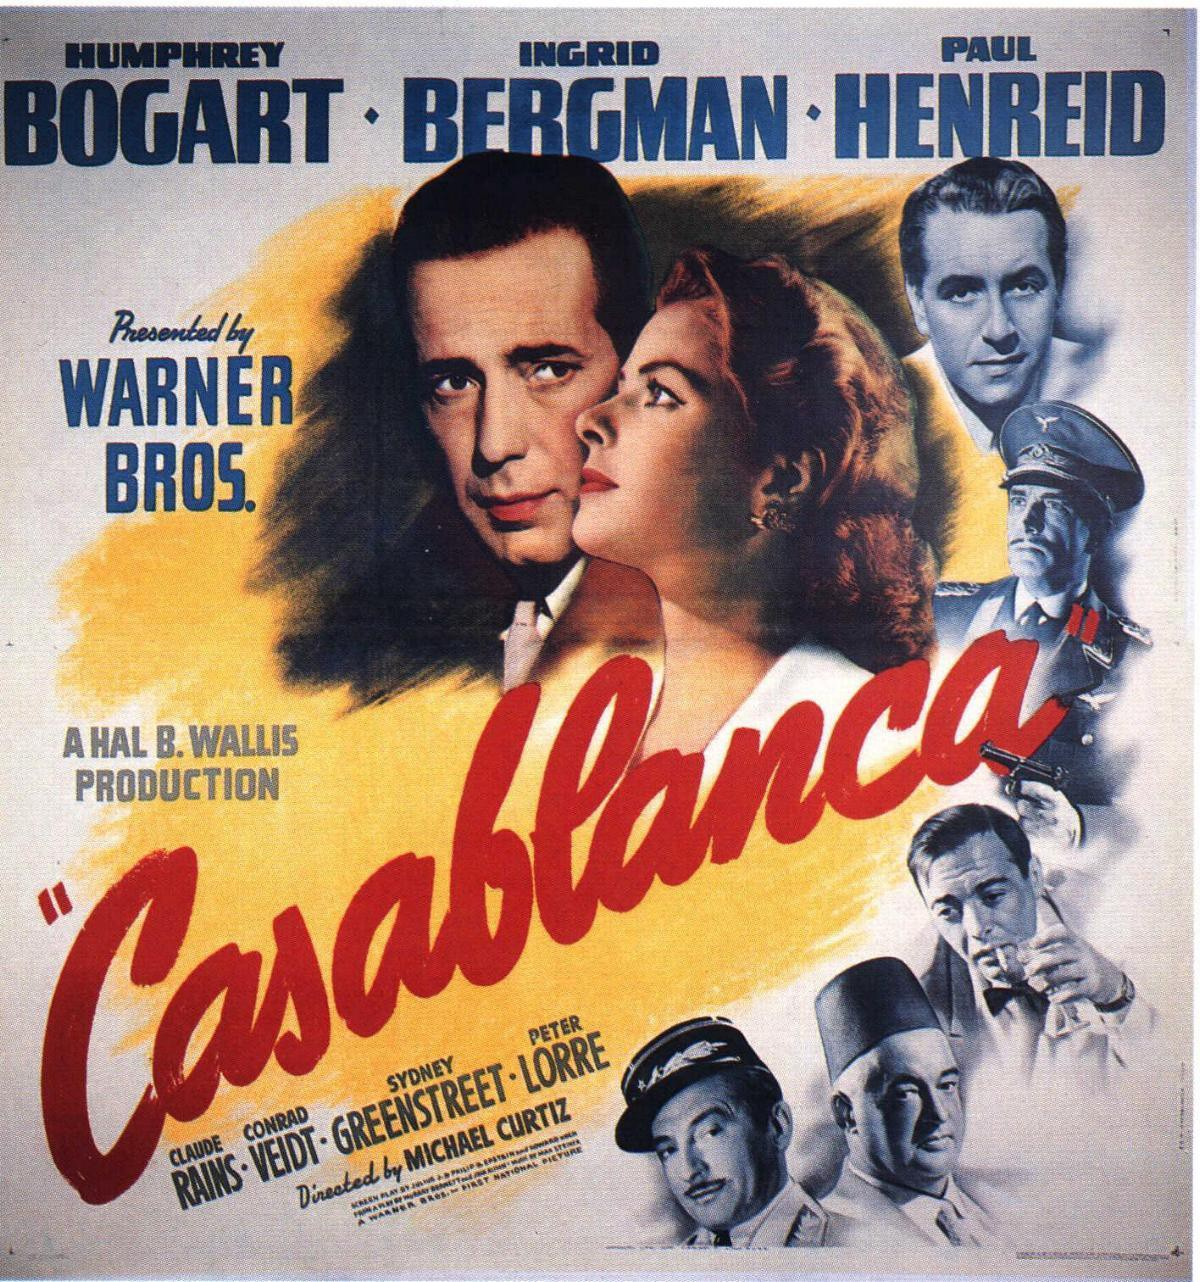 an analysis and a new perspective in the film industry movie casablanca directed by michael curtiz